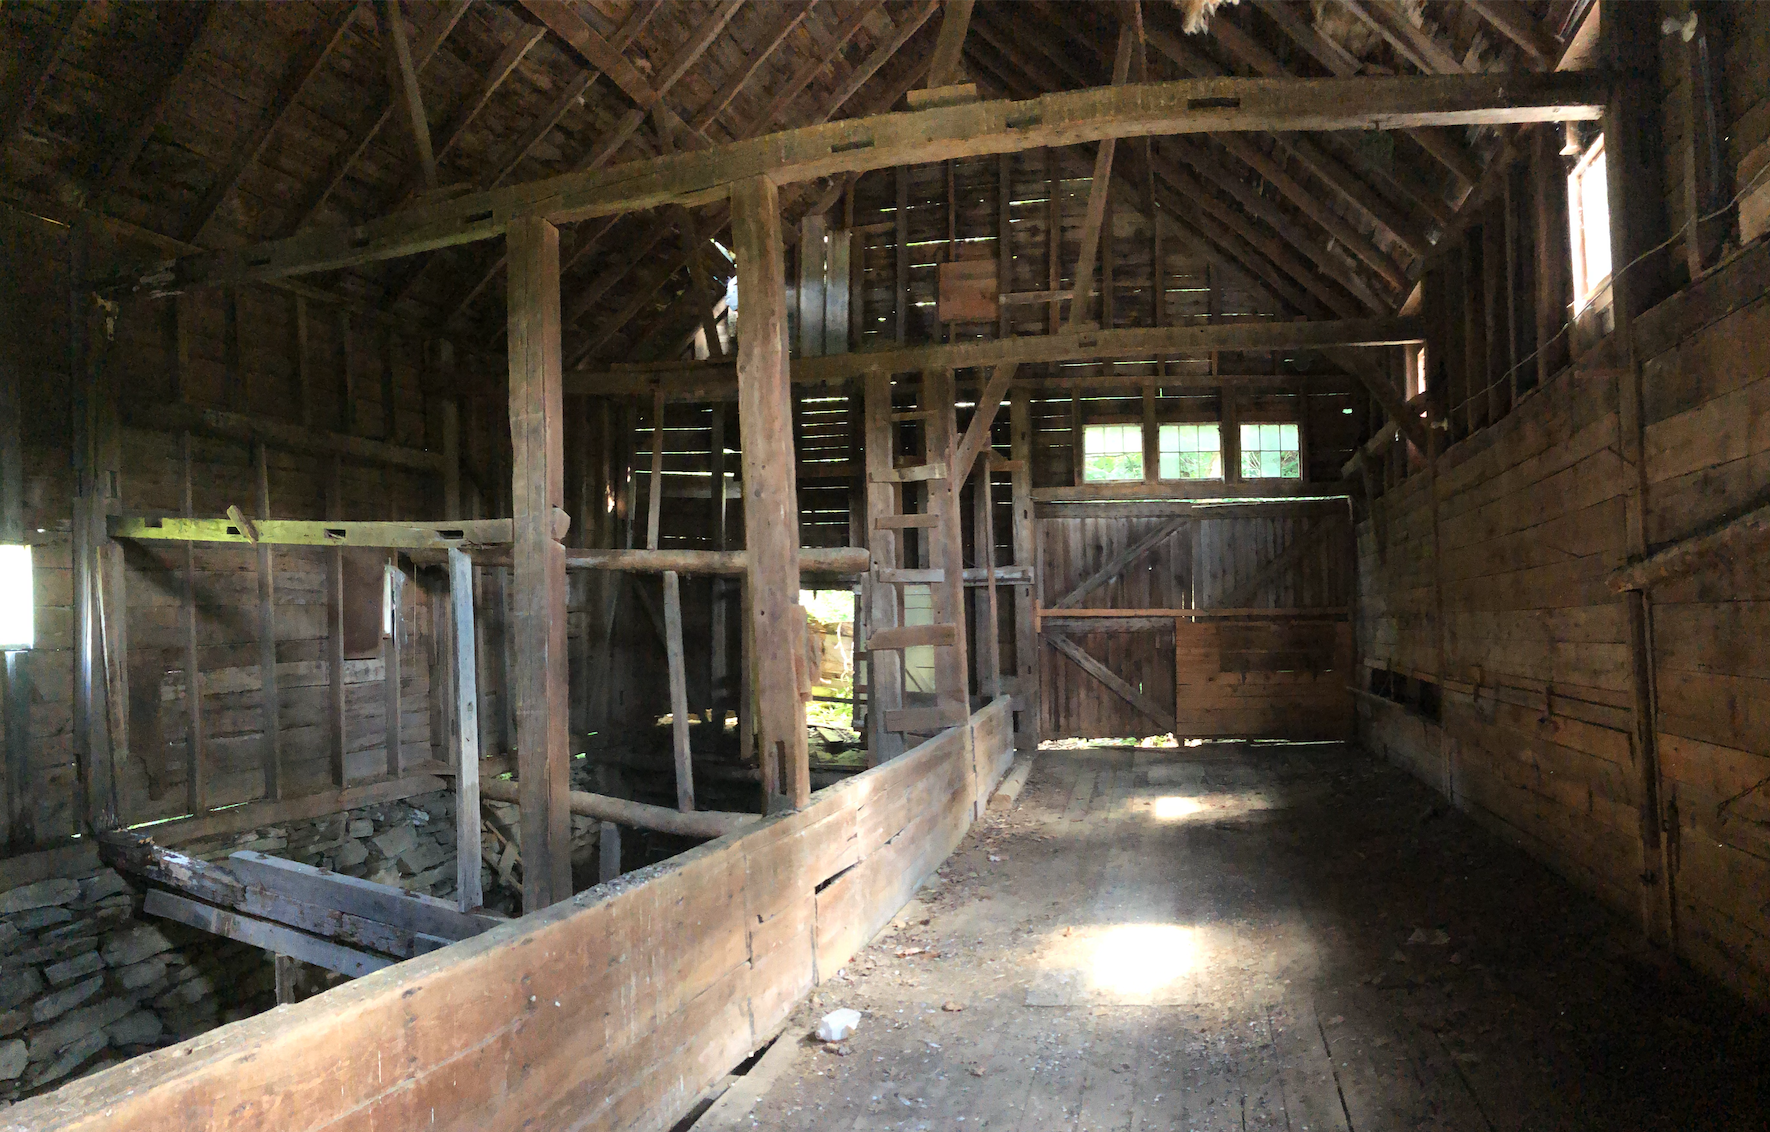 A cathedral-height barn made of wood, in disrepair, shot through with sunbeams,